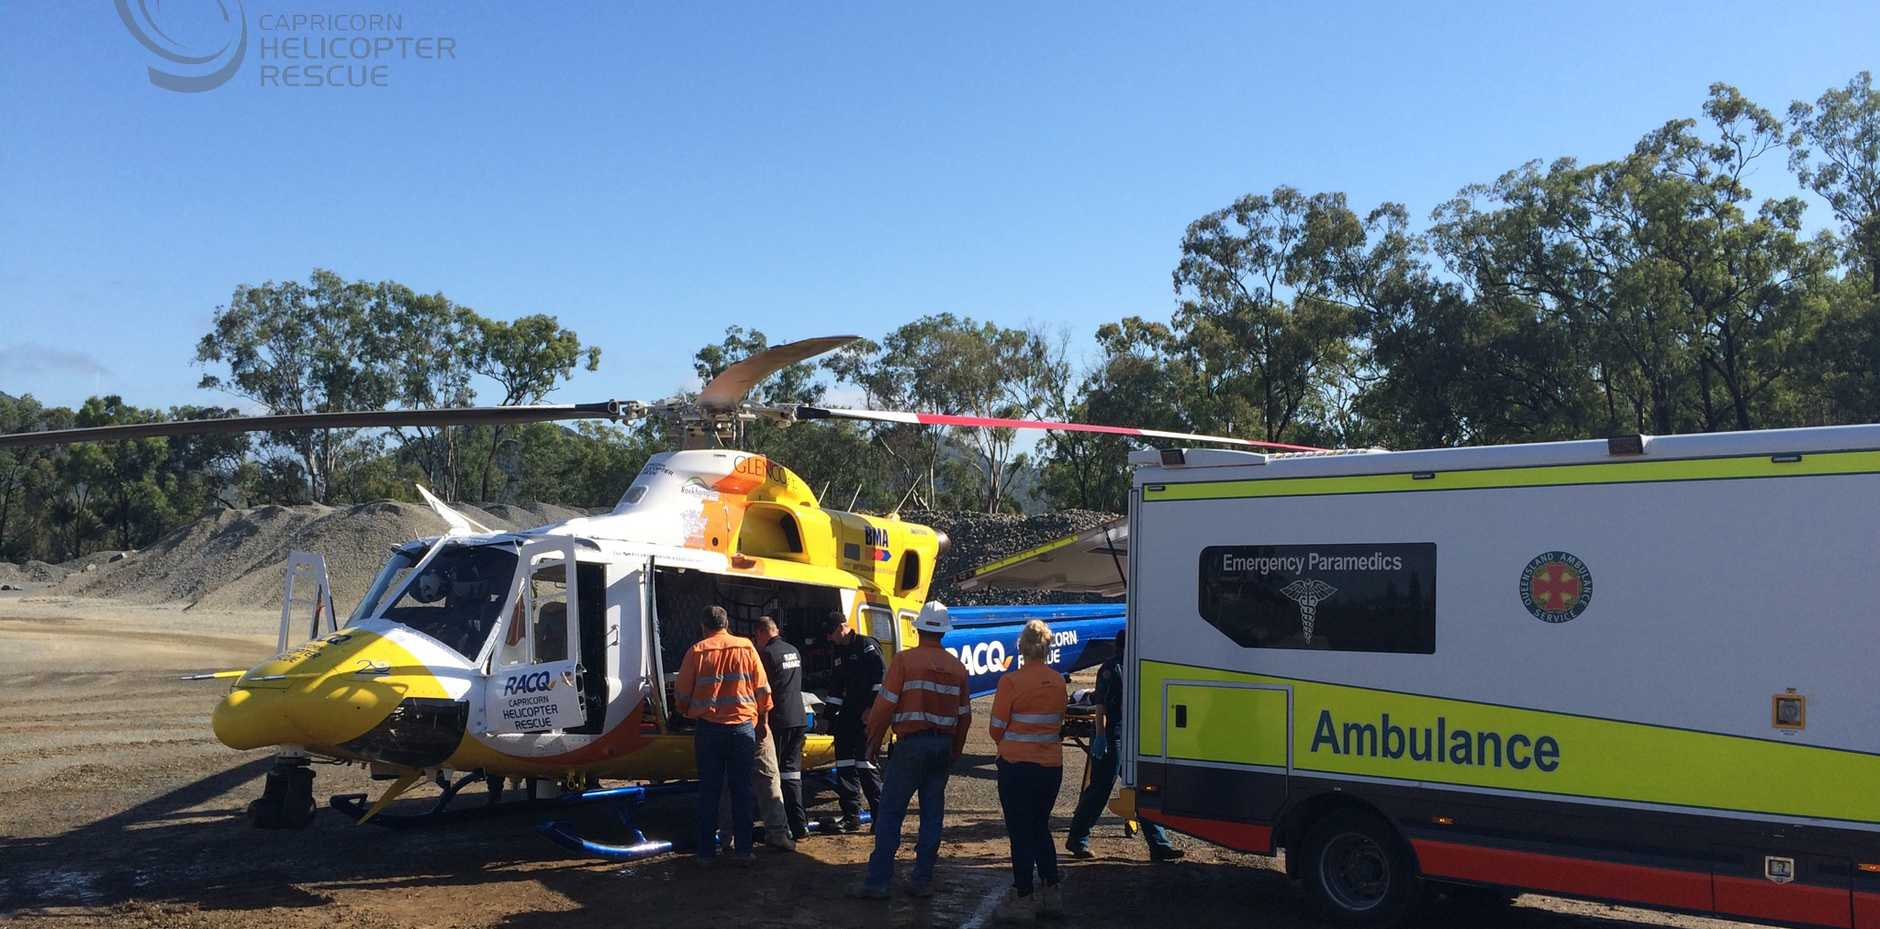 An intensive care paramedic stabilised the man at the scene in Yarwun before transporting him to Rockhampton hospital.